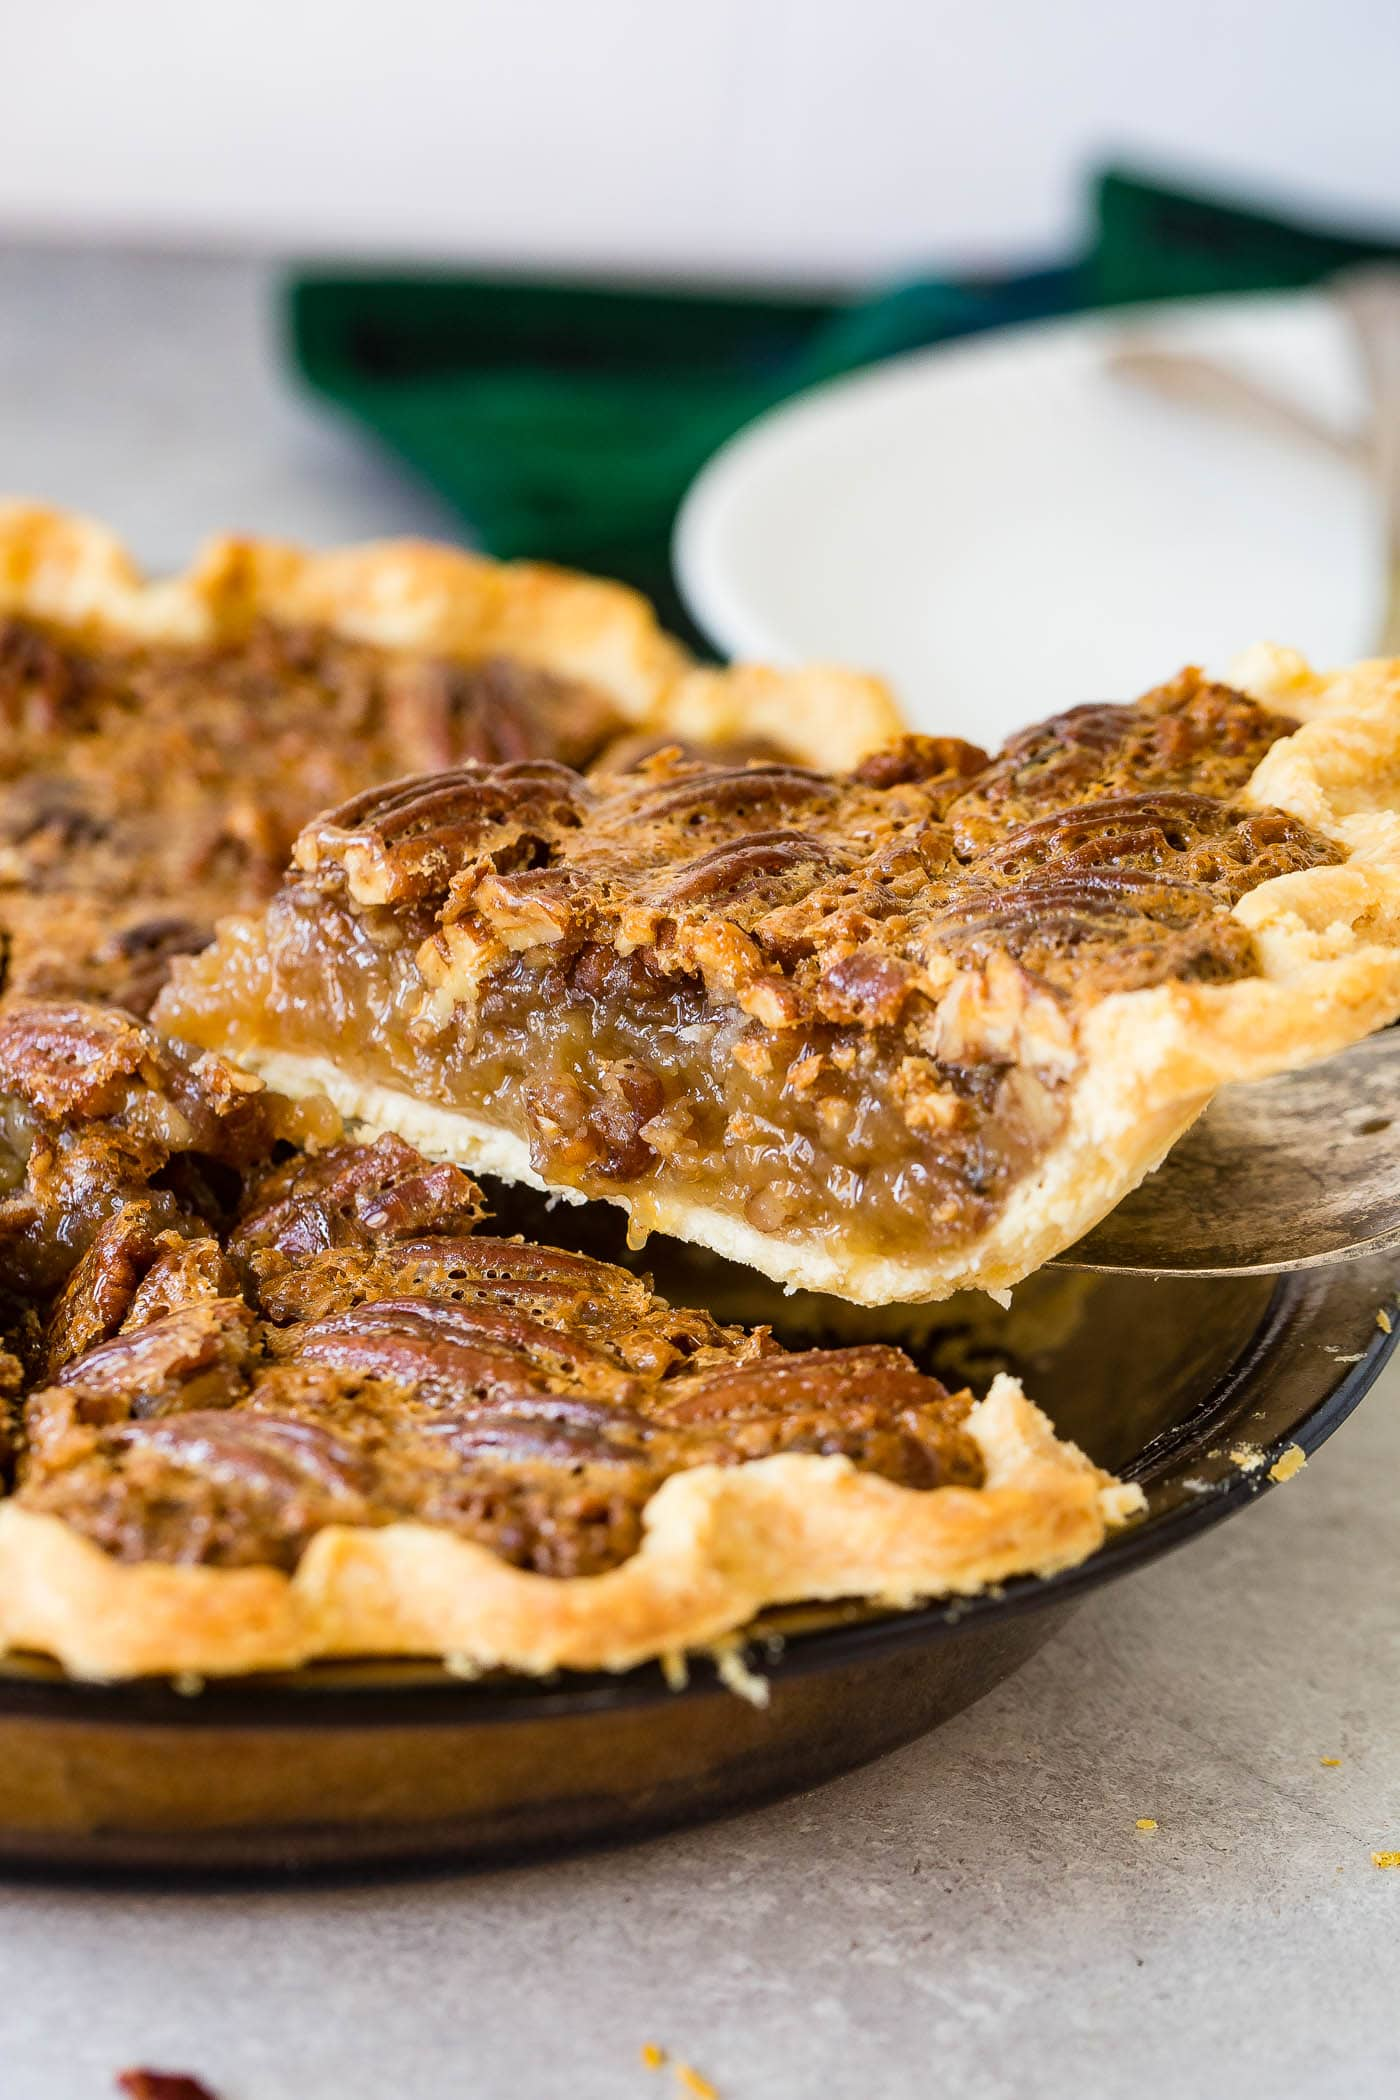 A photo of a slice of pecan pie being removed from a whole pie.